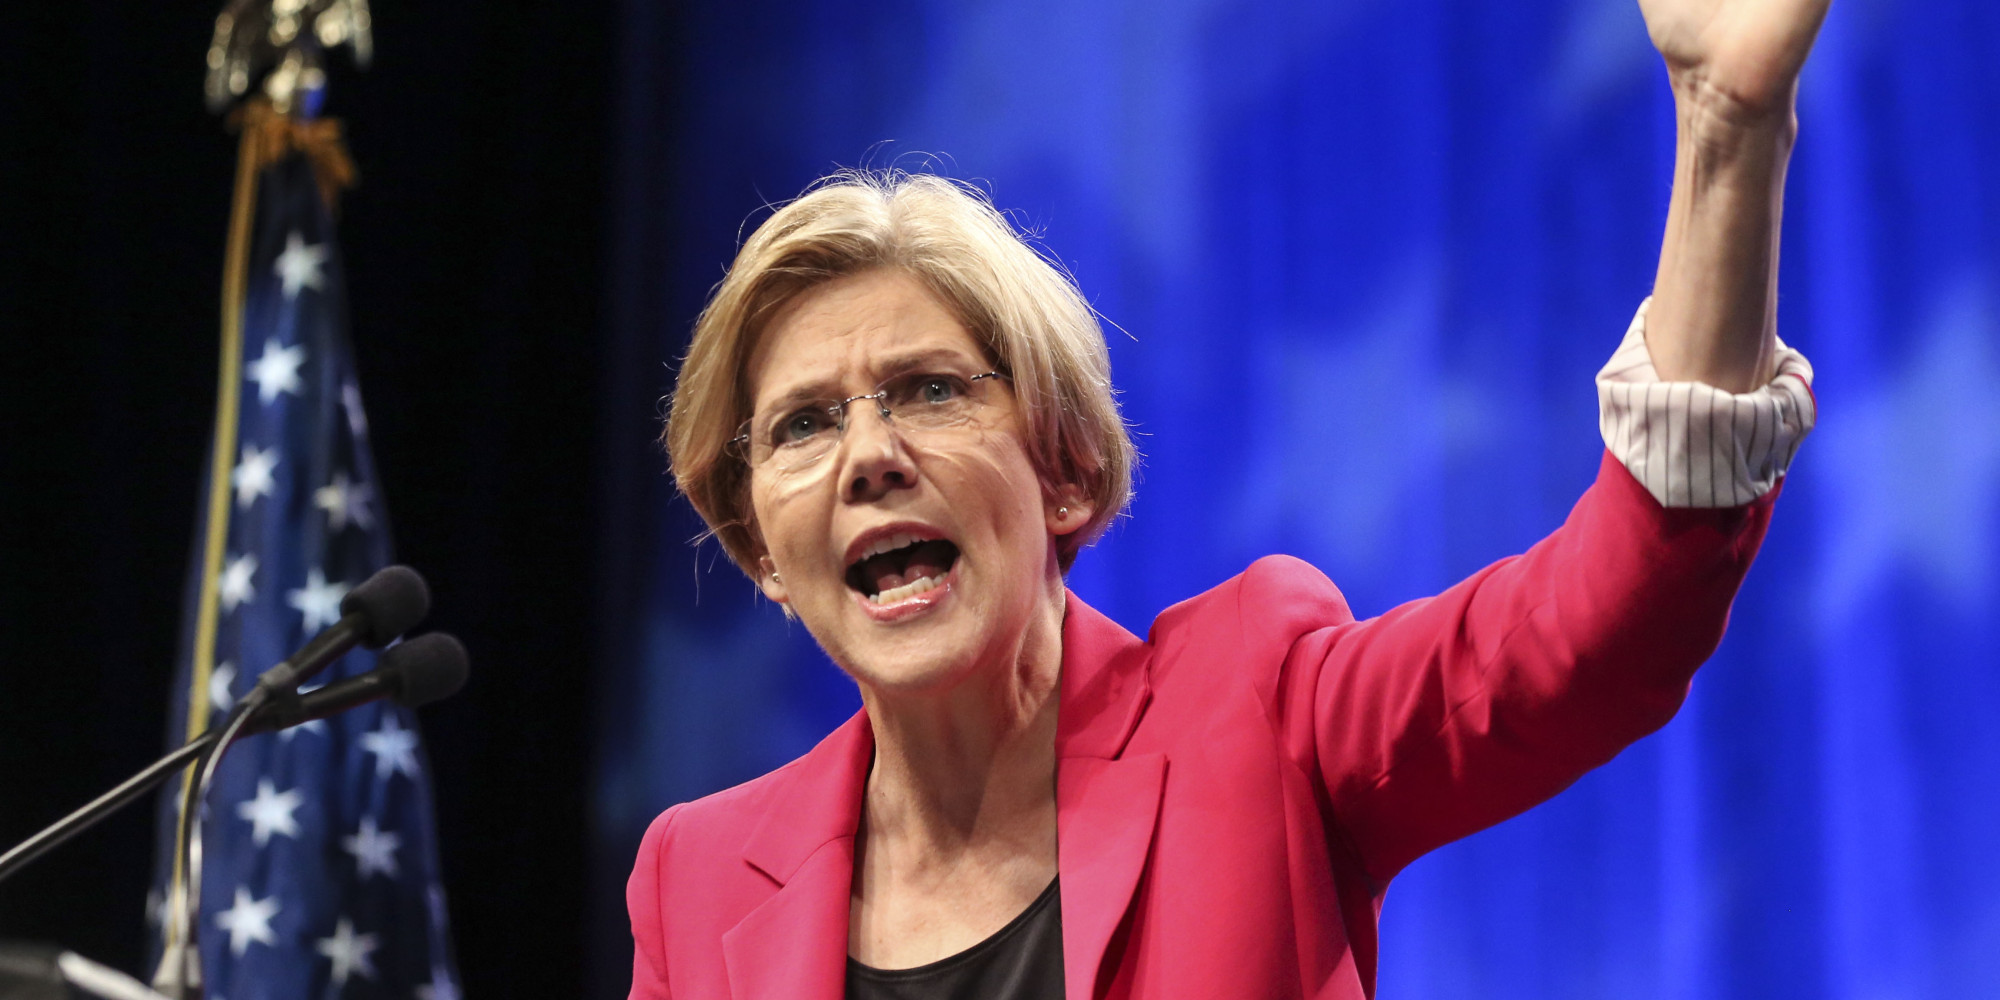 SPRINGFIELD, MA - JUNE 2: Elizabeth Warren speaks during the 2012 Massachusetts Democratic Endorsing Convention, held at the MassMutual Center in Springfield. (Photo by Aram Boghosian/The Boston Globe via Getty Images)